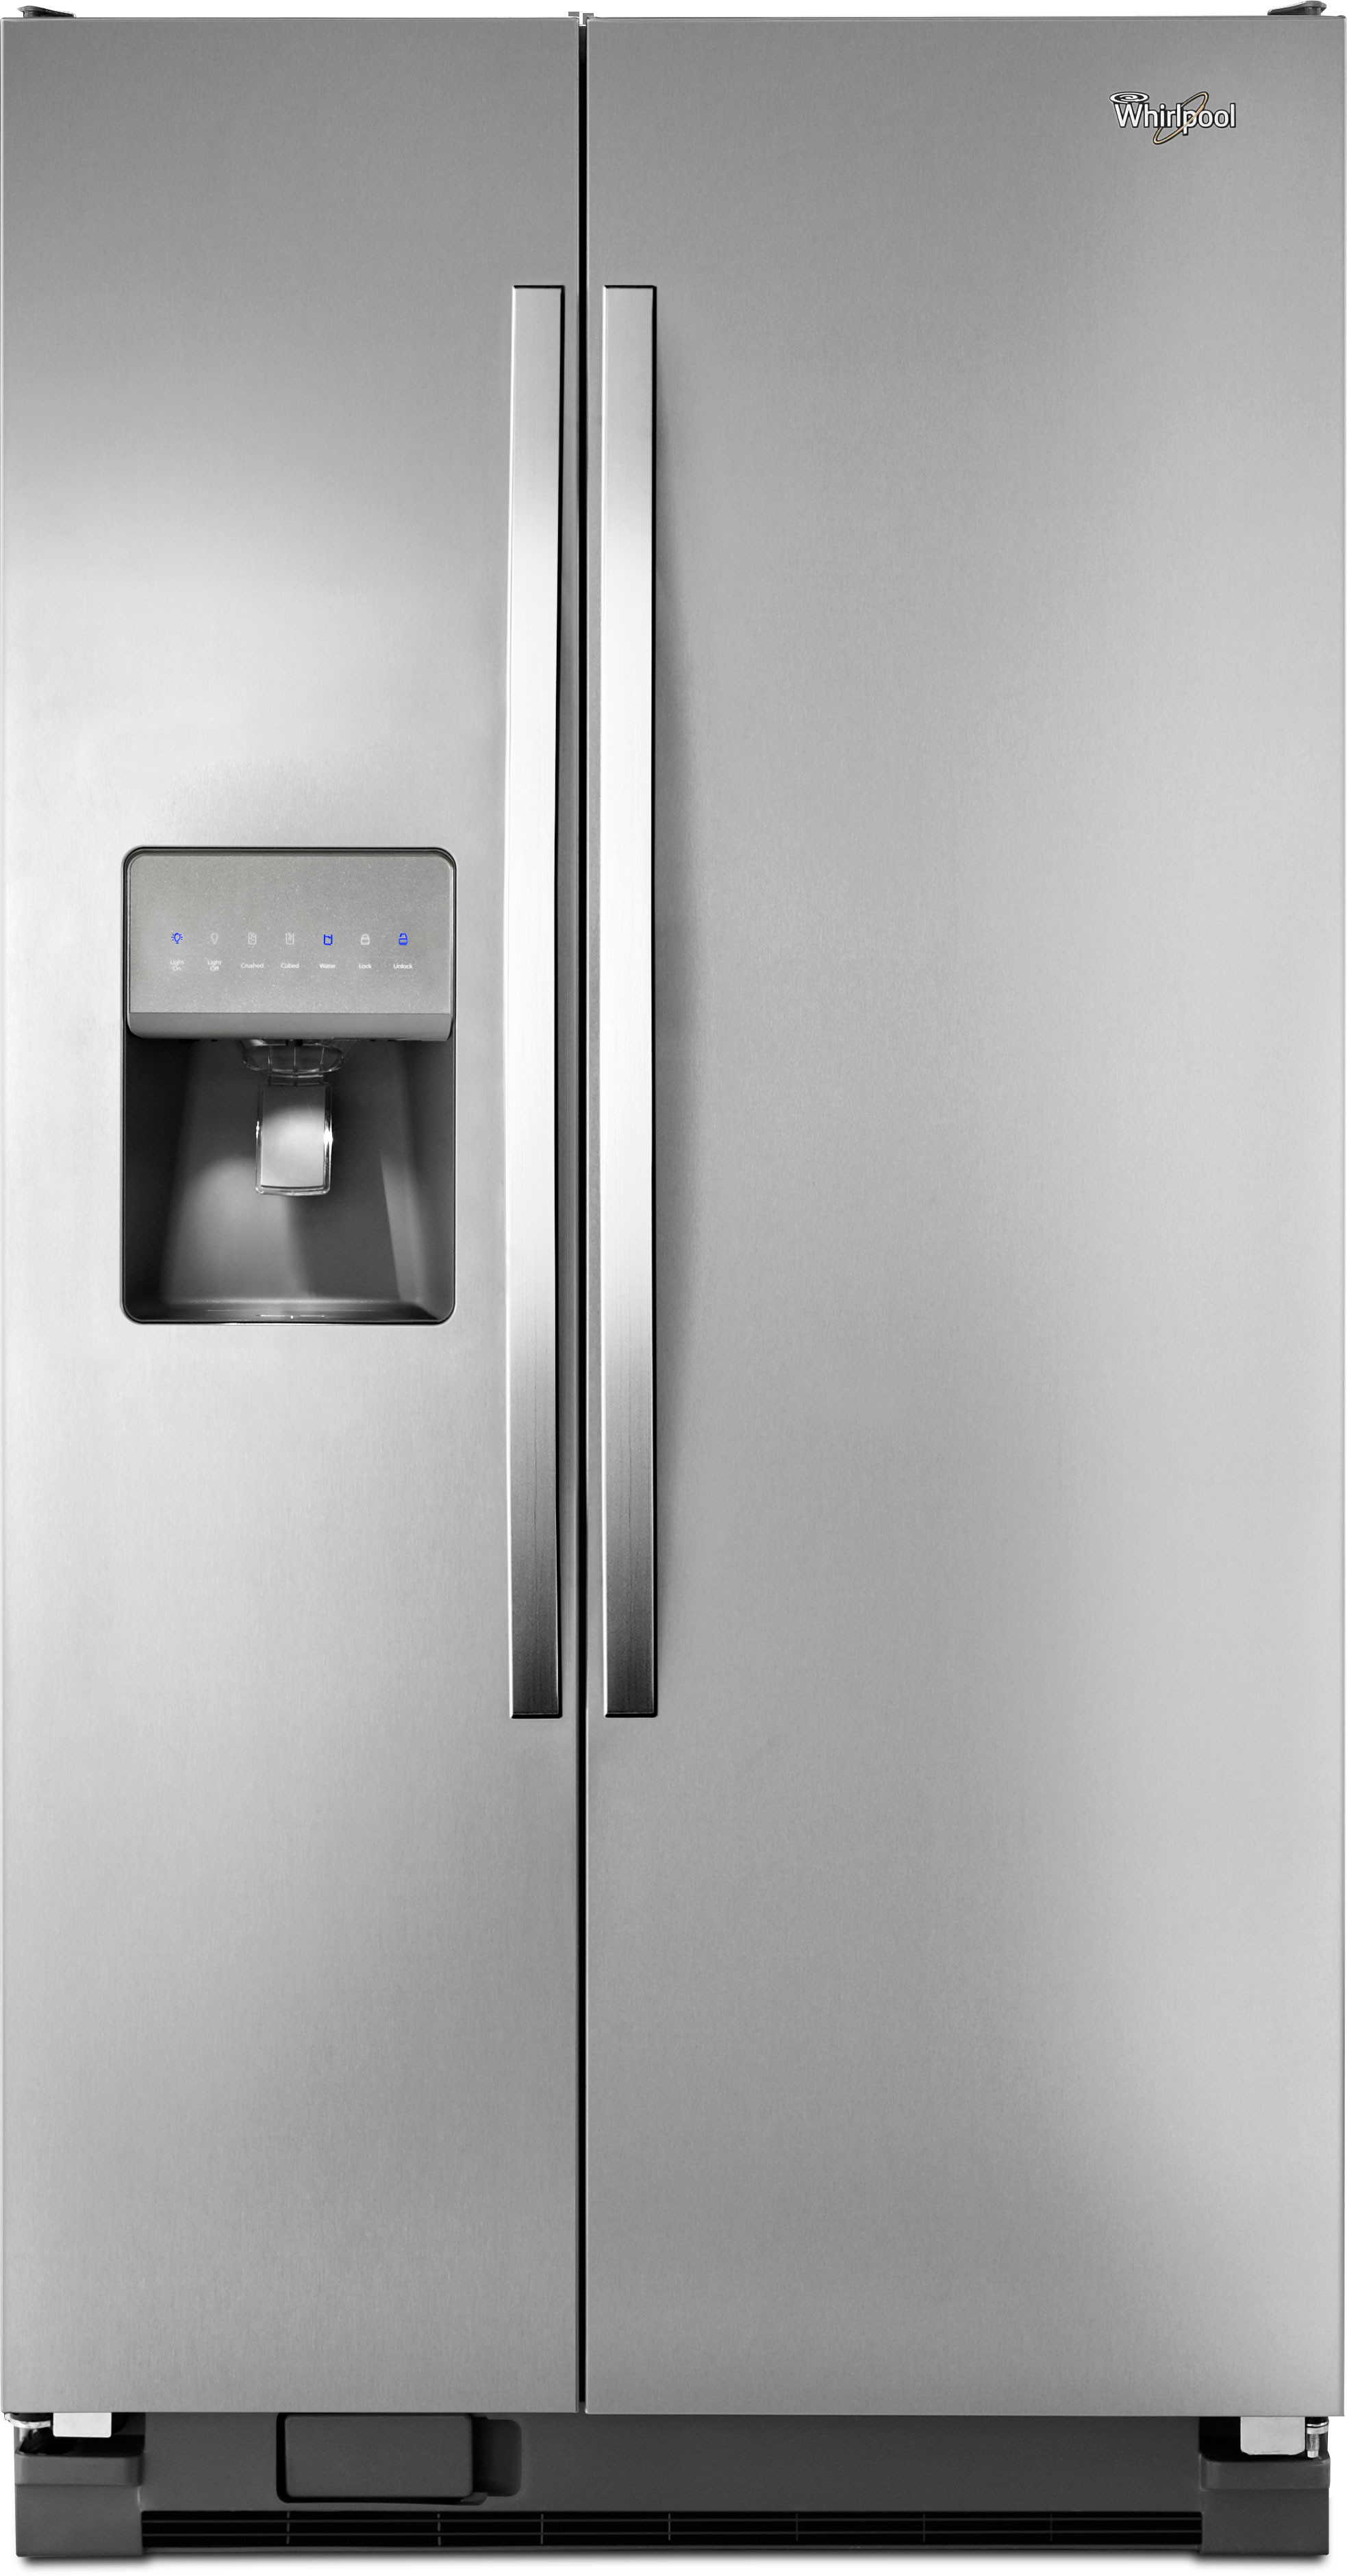 Side by side refrigerator no water dispenser - Side By Side Refrigerator No Water Dispenser 20